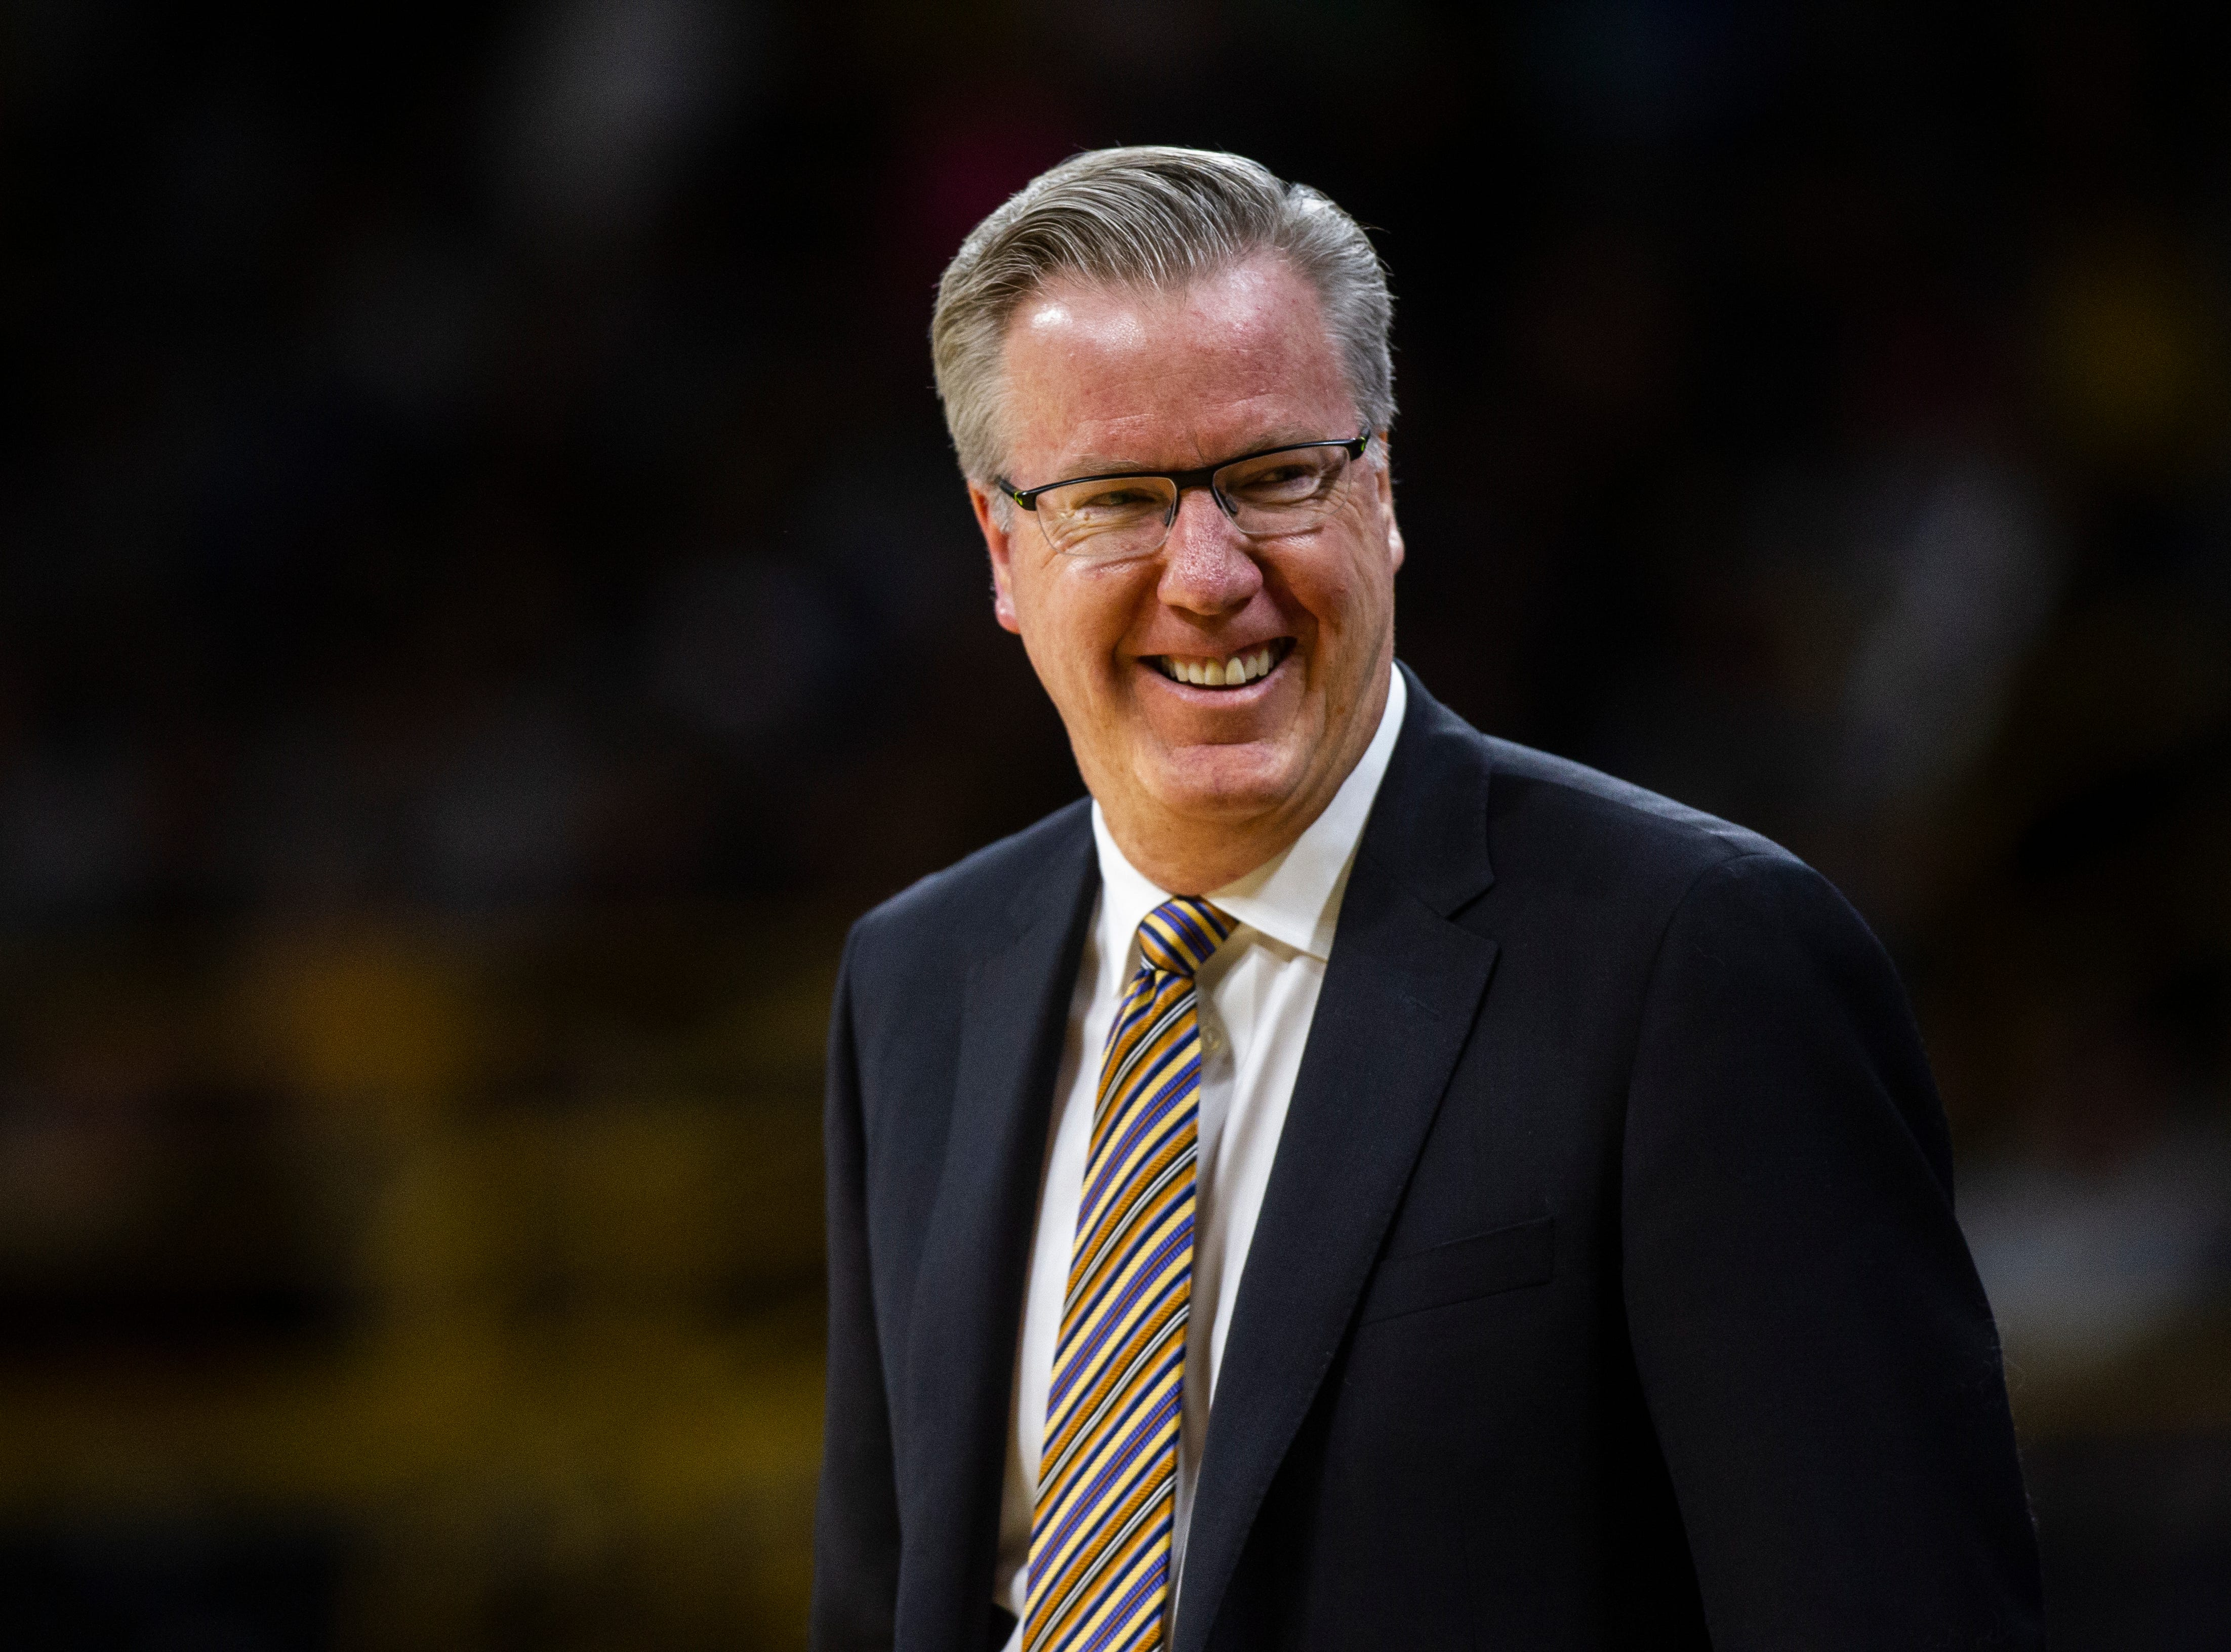 Iowa men's basketball head coach Fran McCaffery laughs during a men's basketball exhibition game on Sunday, Nov. 4, 2018, at Carver-Hawkeye Arena in Iowa City.